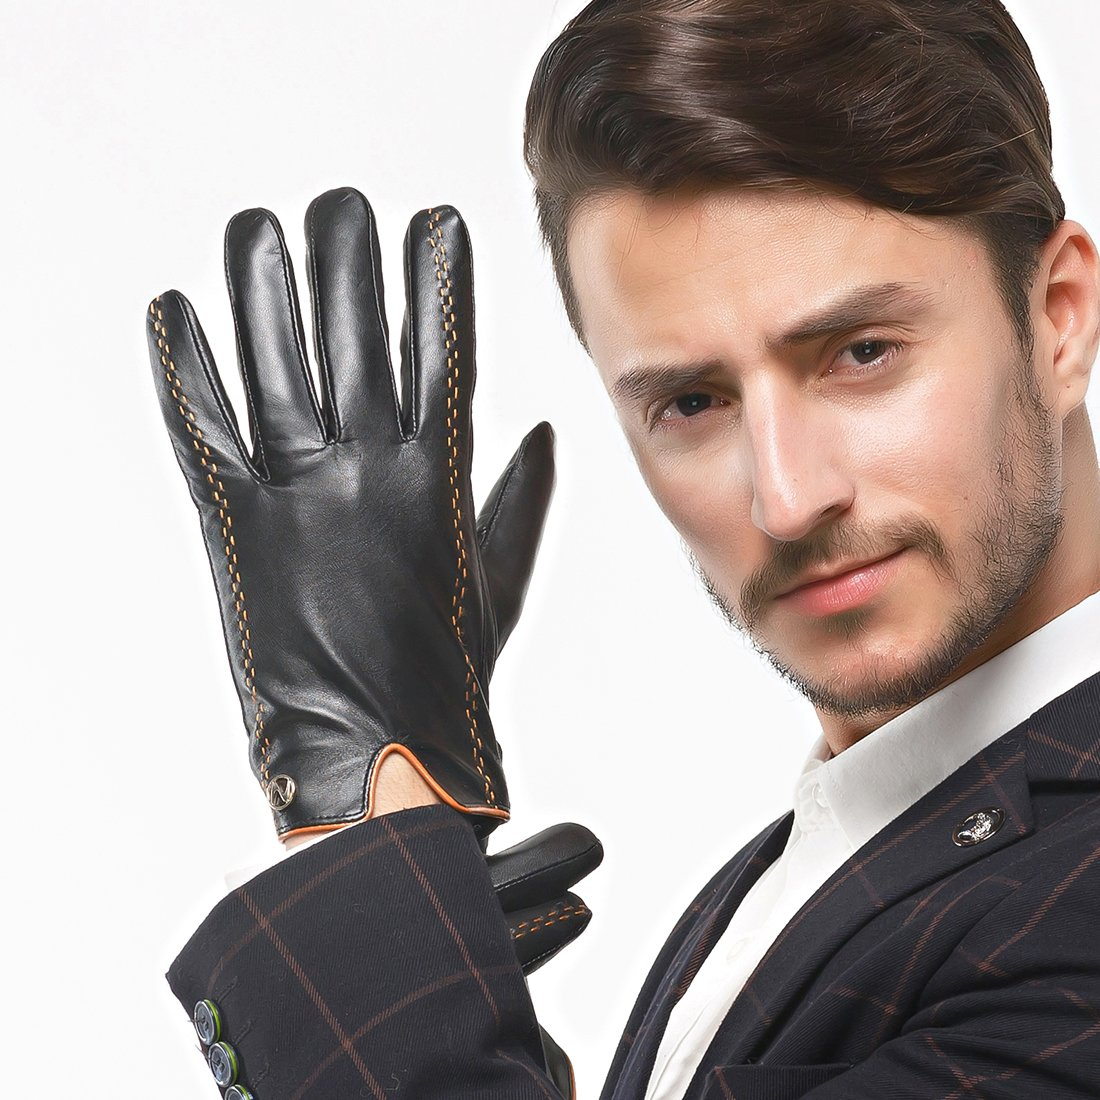 Nappaglo Men's Italian Nappa Leather Gloves Touchscreen Lambskin Warm Gloves with Lines of Hit Color (S (Palm Girth:up to 8''), Black (Touchscreen)) by Nappaglo (Image #2)